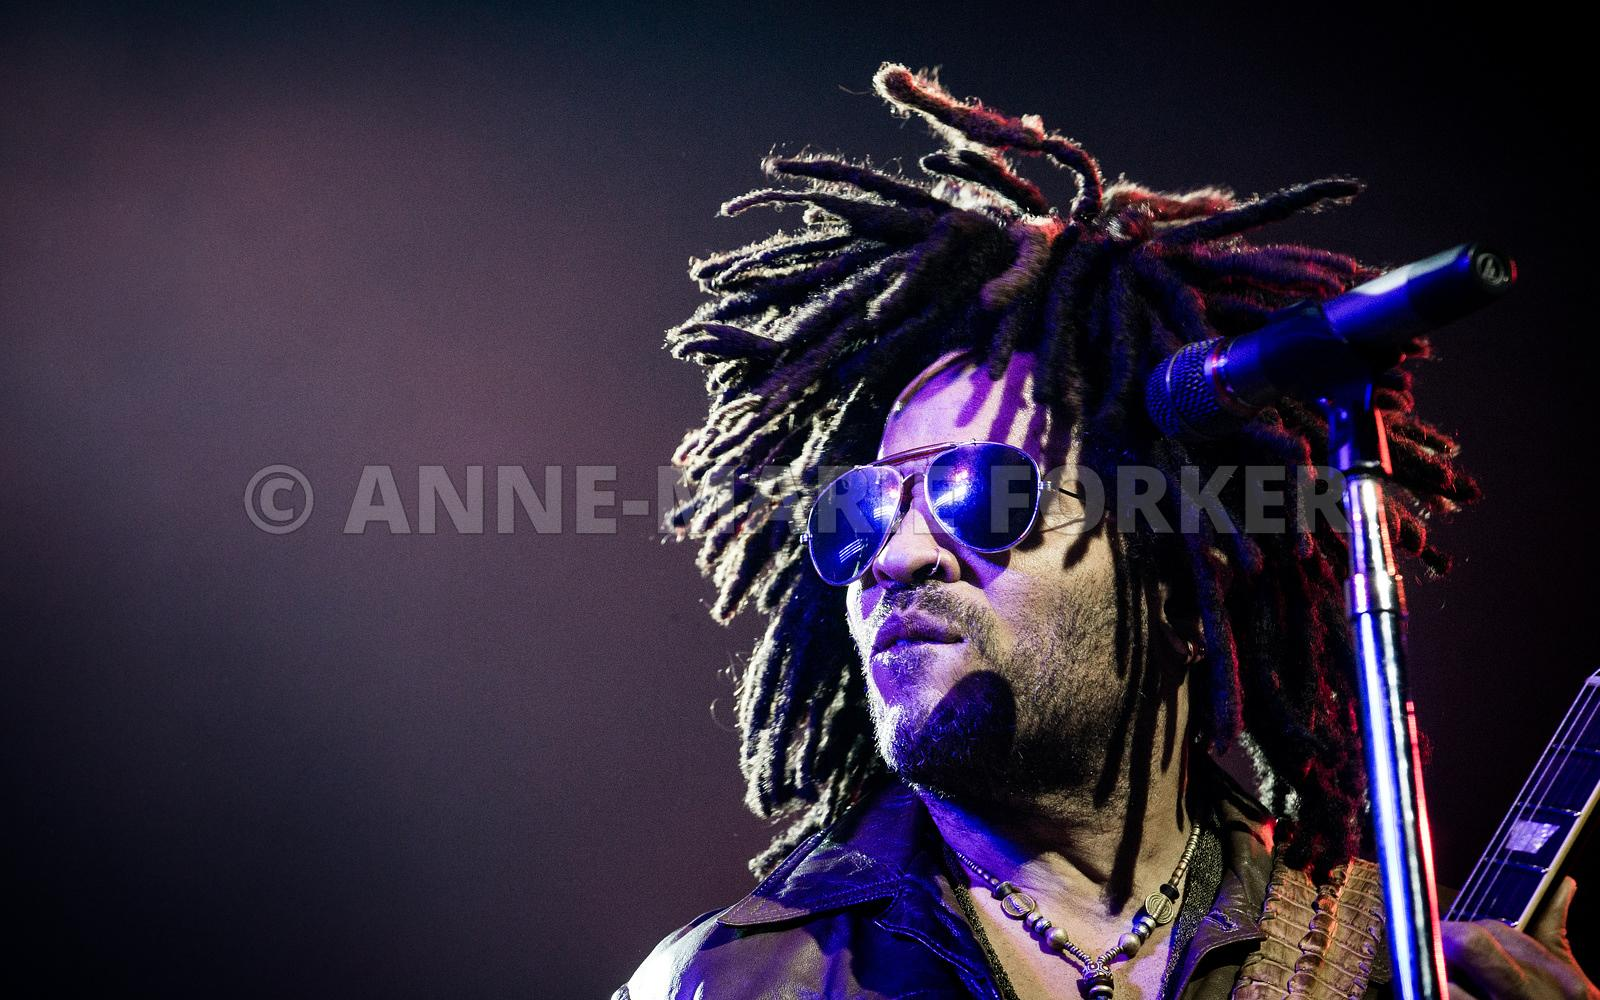 Lenny_Kravitz_by_AM_Forker-3507